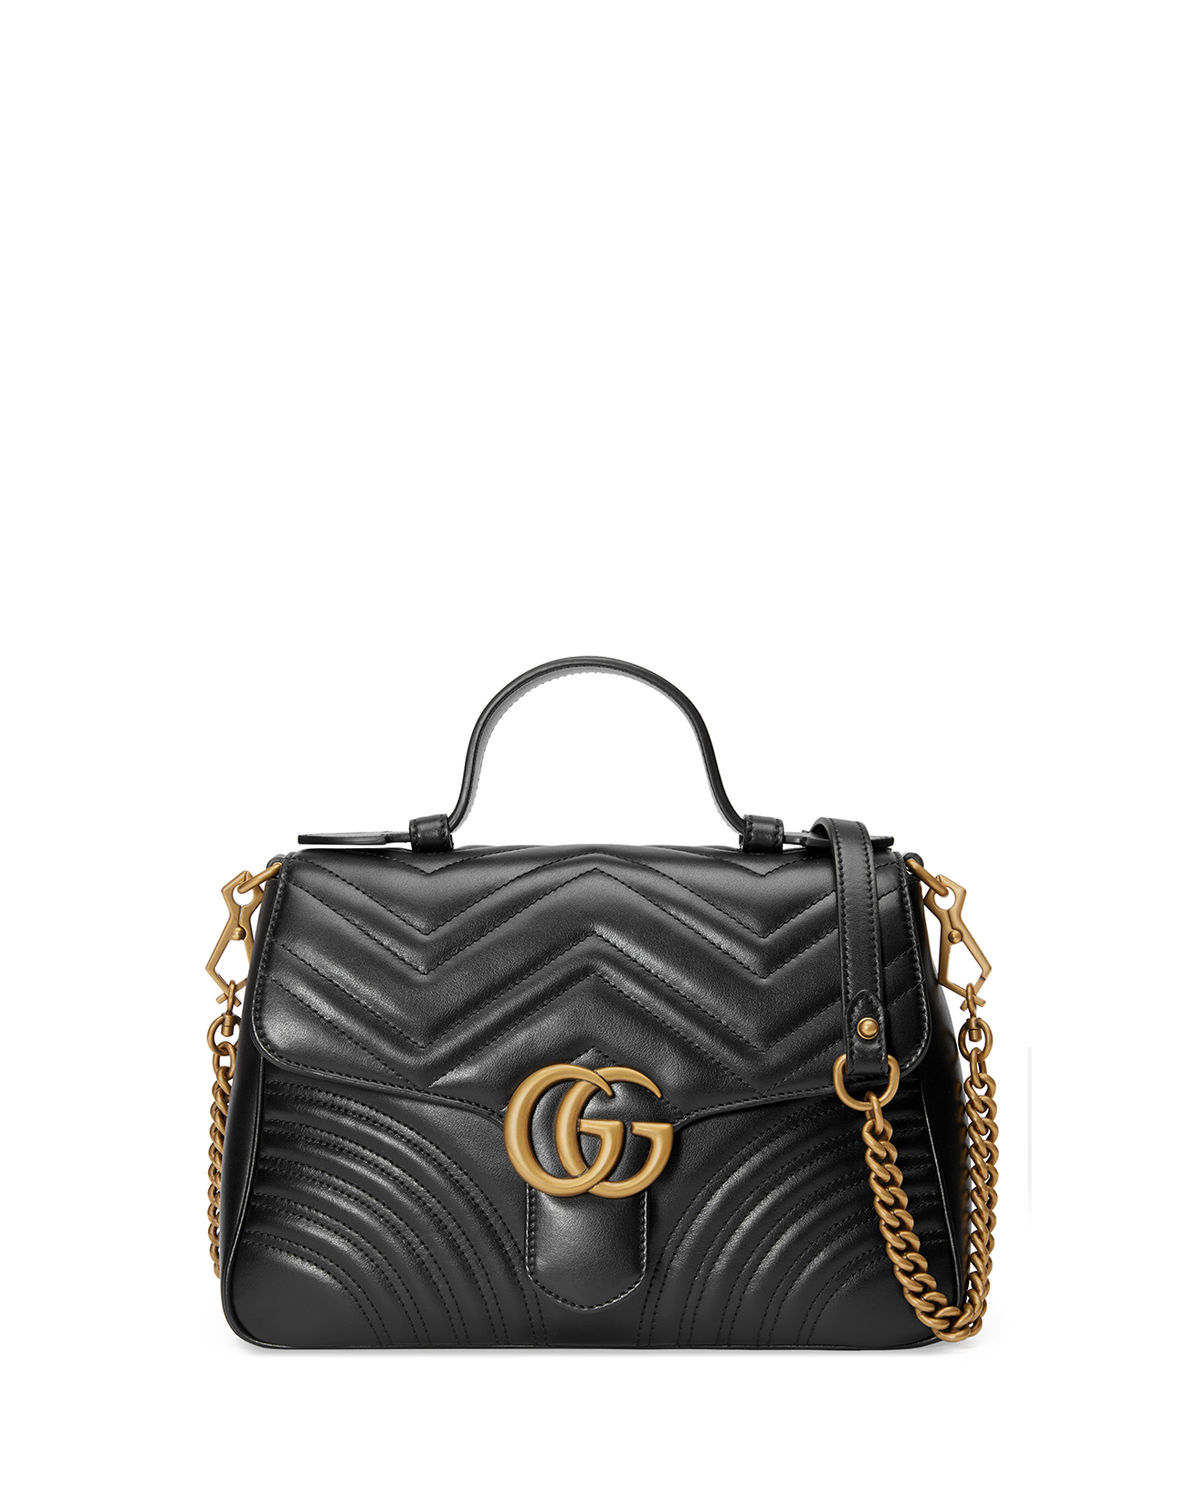 6349ab16c Gucci GG Marmont Small Chevron Quilted Top-Handle Bag with Chain Strap